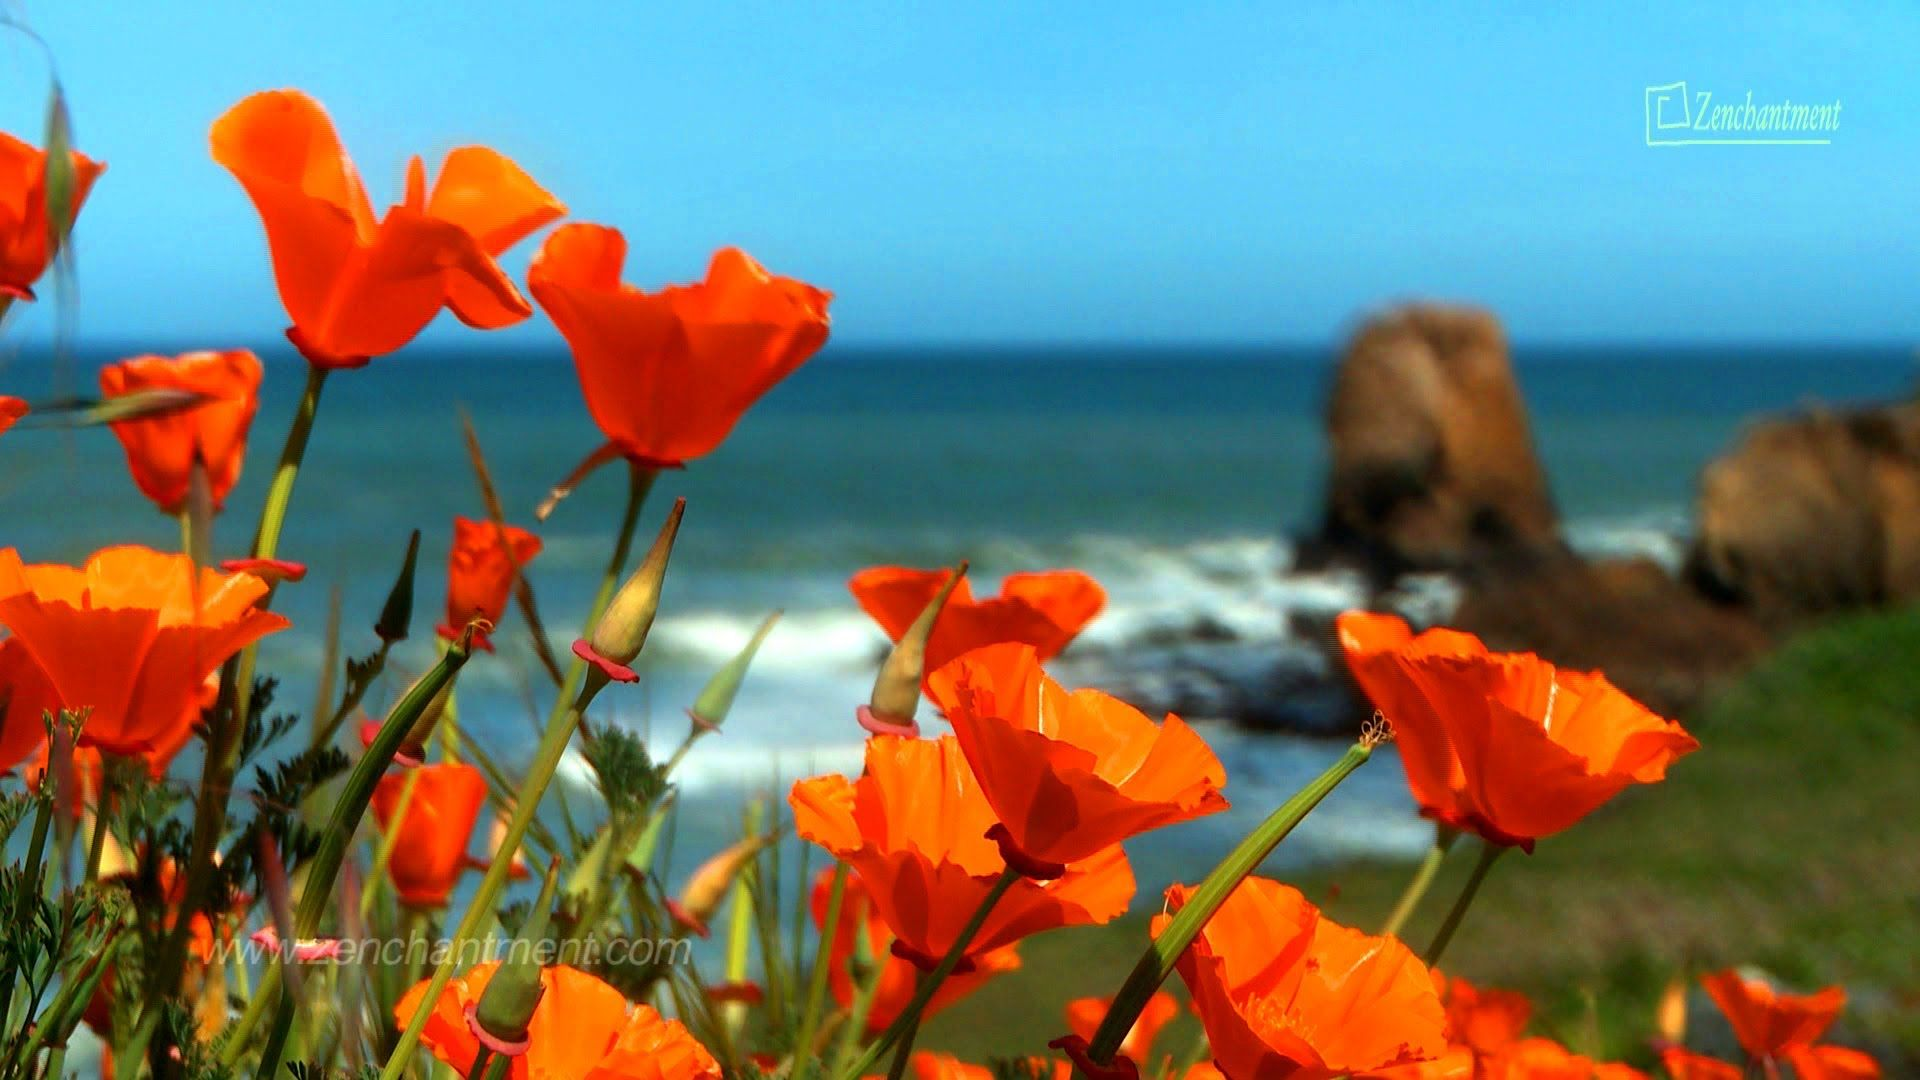 Zen Ocean Spring Wild Flowers of California's Coast